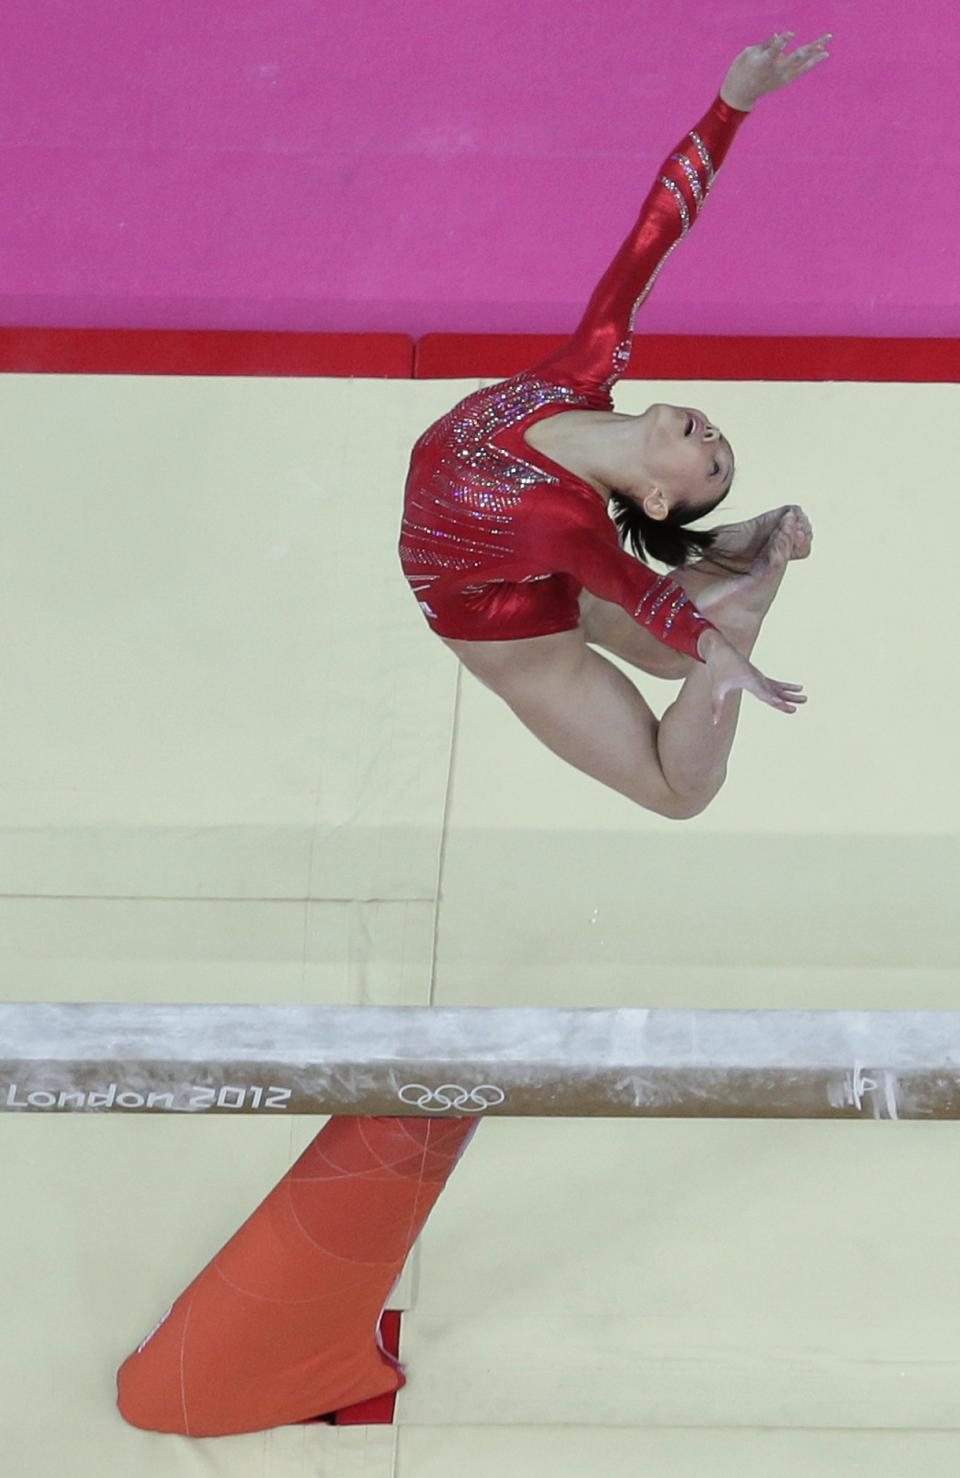 U.S. gymnast Kyla Ross performs on the balance beam during the Artistic Gymnastic women's team final at the 2012 Summer Olympics, Tuesday, July 31, 2012, in London. (AP Photo/Julie Jacobson)